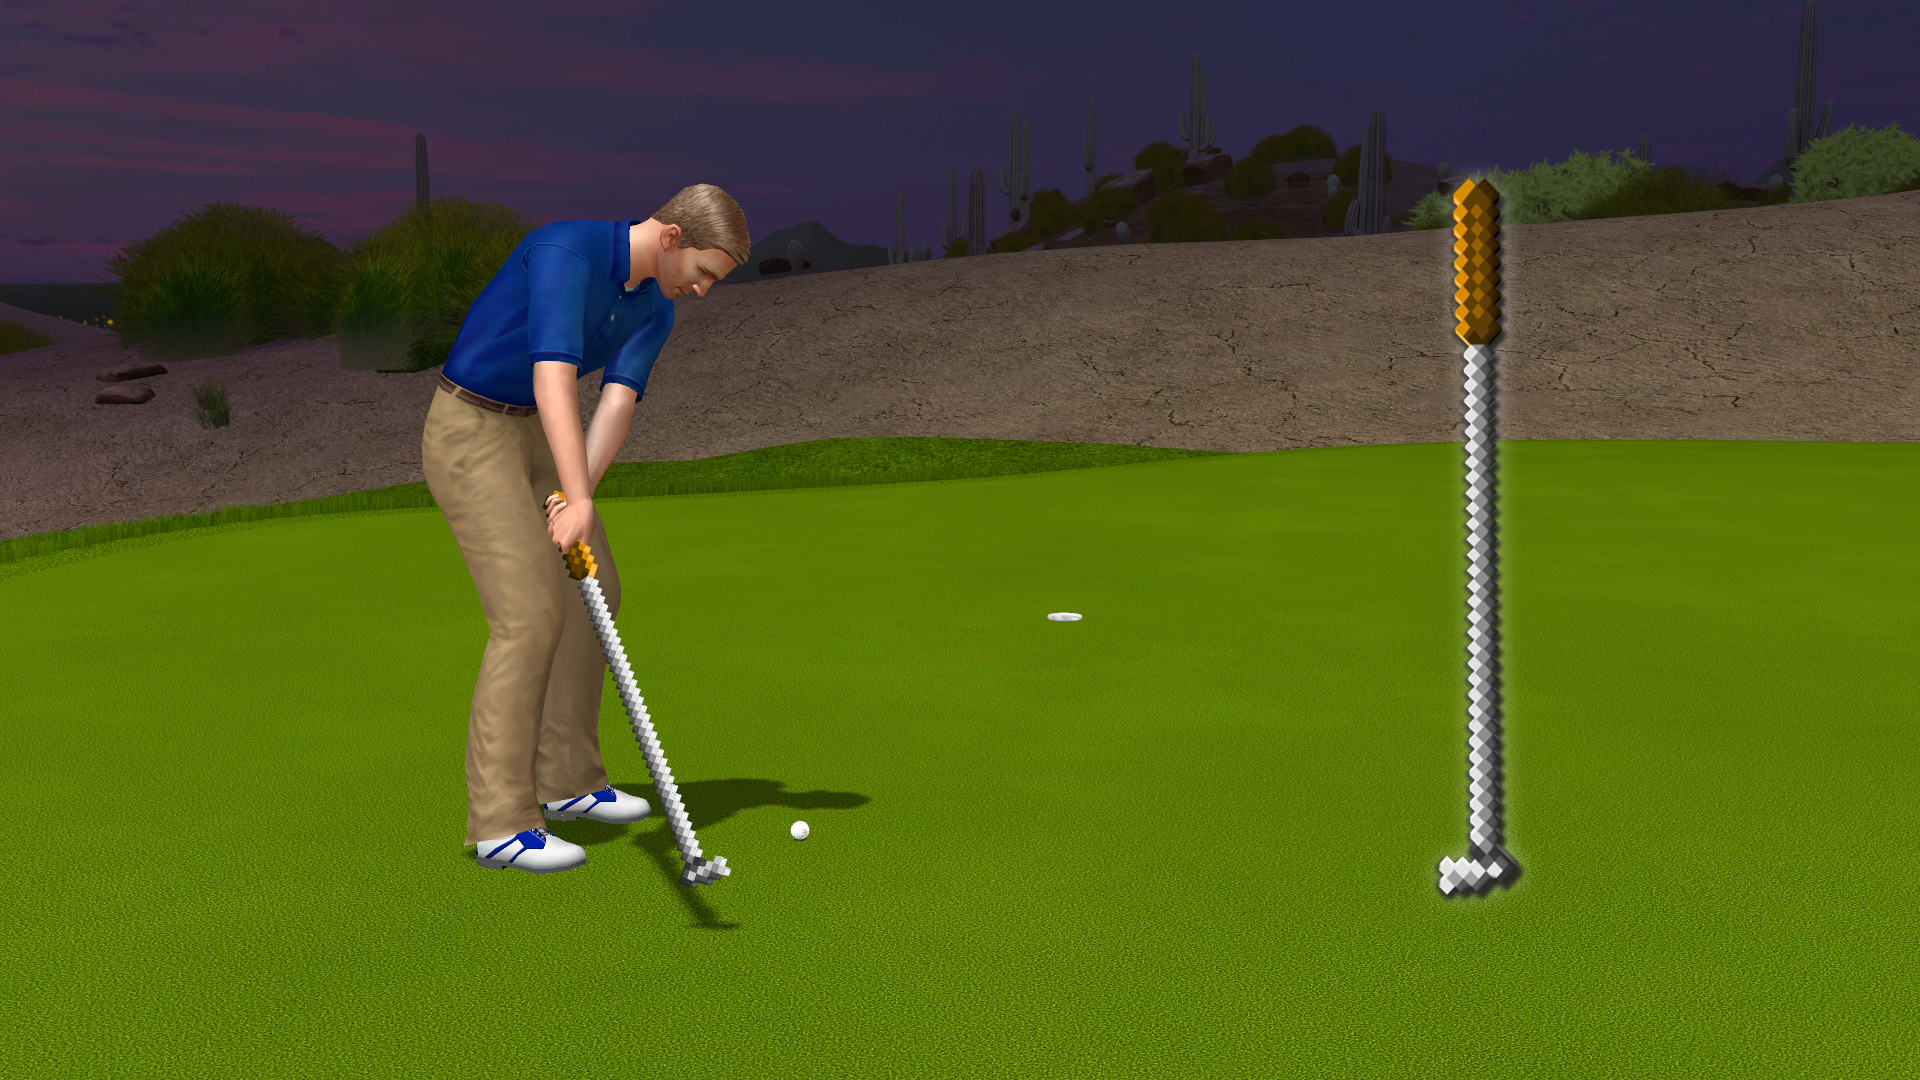 Golden Tee 2019 - 8-Bit putter